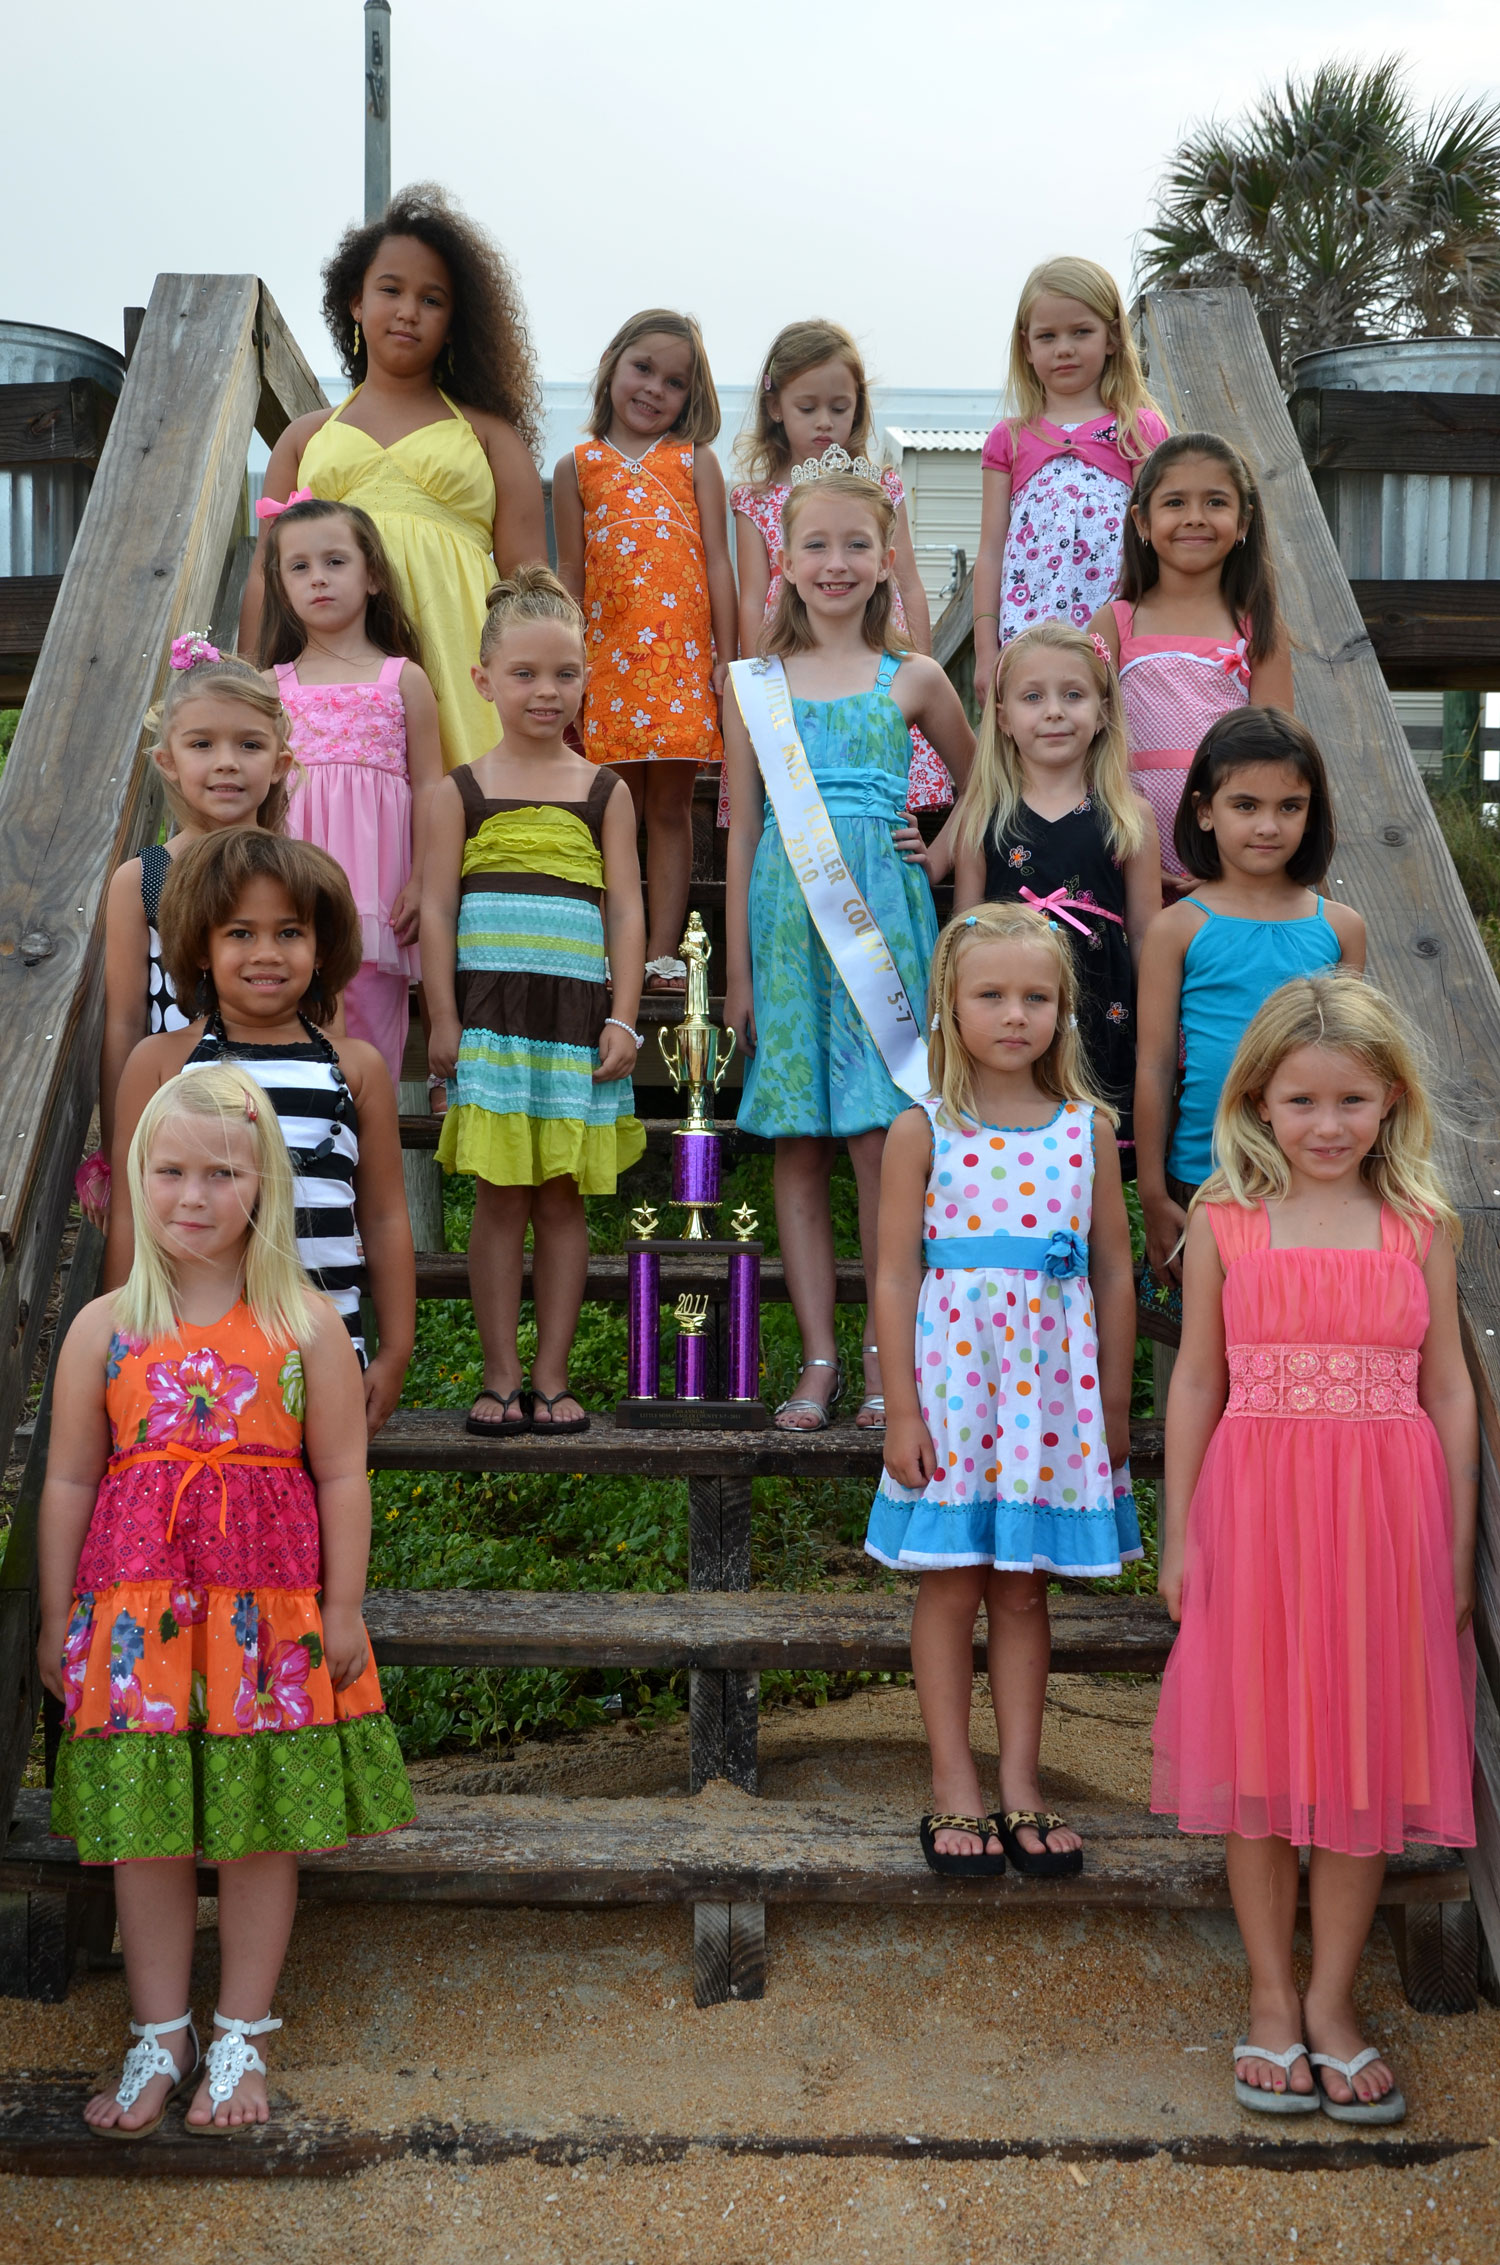 Junior Miss Naturist Pageant http://anyfille.dyndns.org/Junior-Miss-Naturist-Pageant/